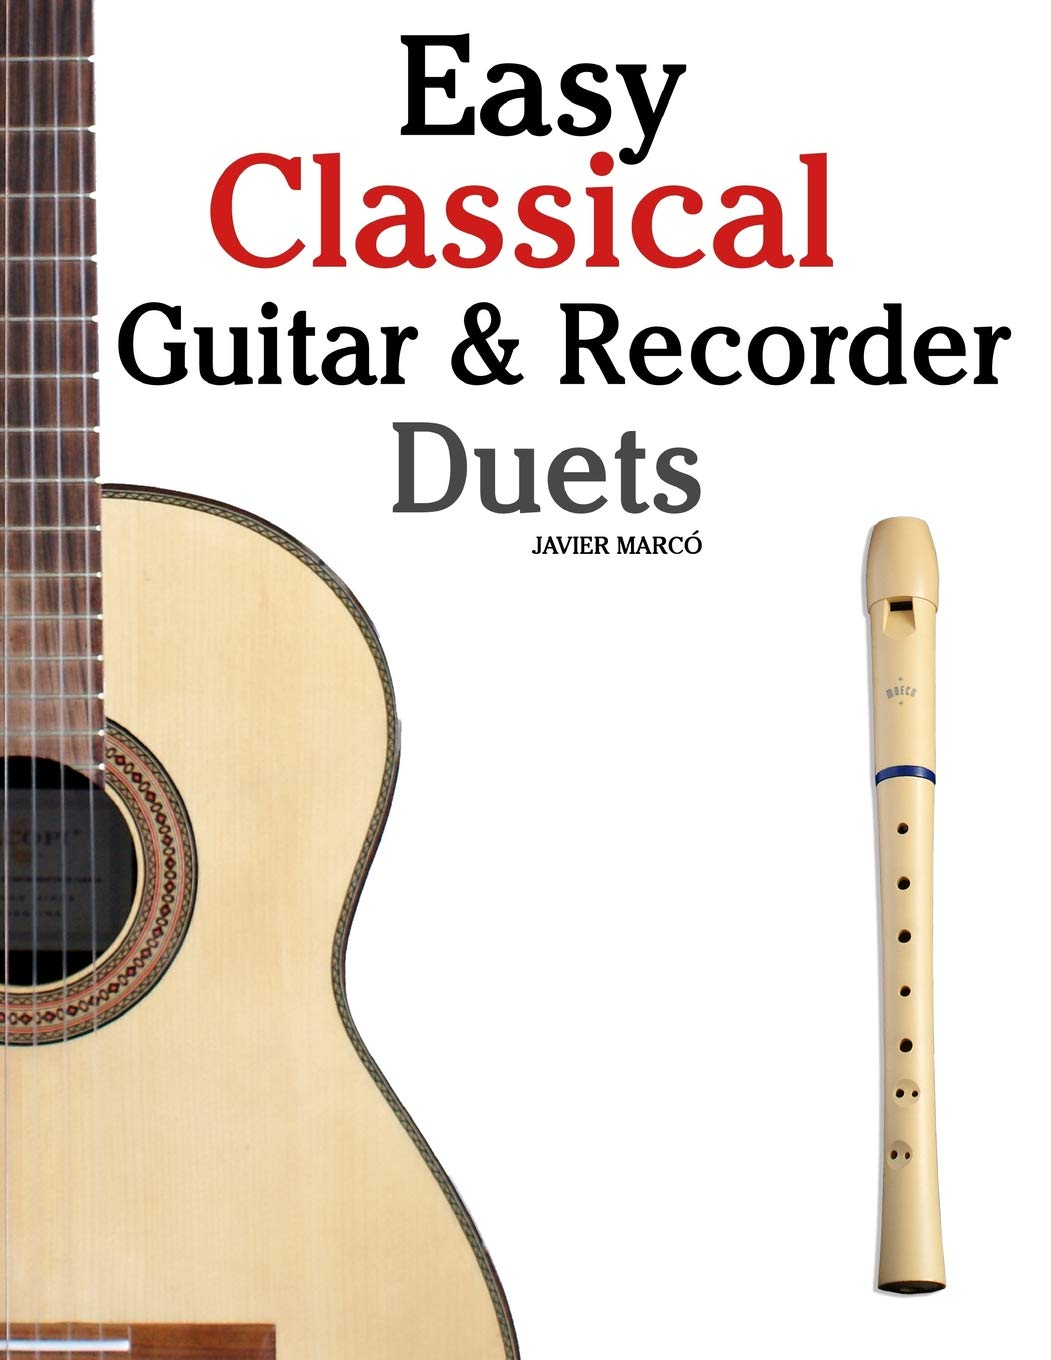 Amazon com: Easy Classical Guitar & Recorder Duets: Featuring music